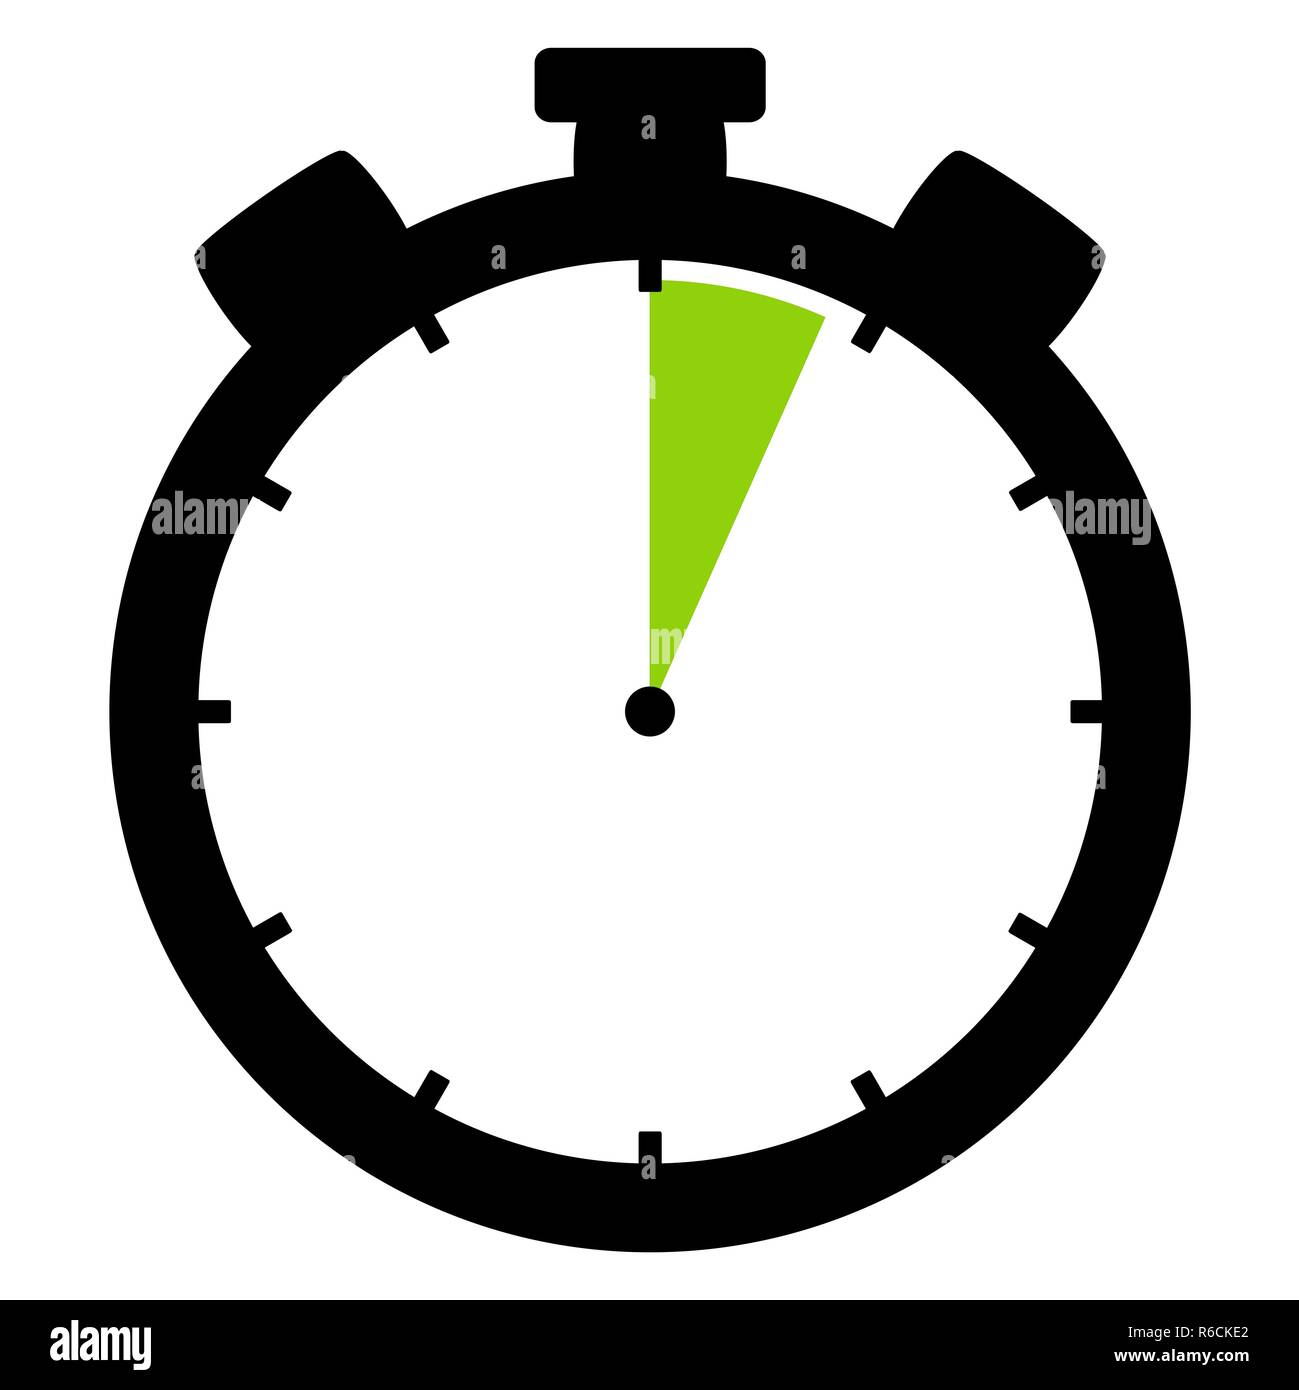 stopwatch icon: 4 minutes or 4 seconds - Stock Image